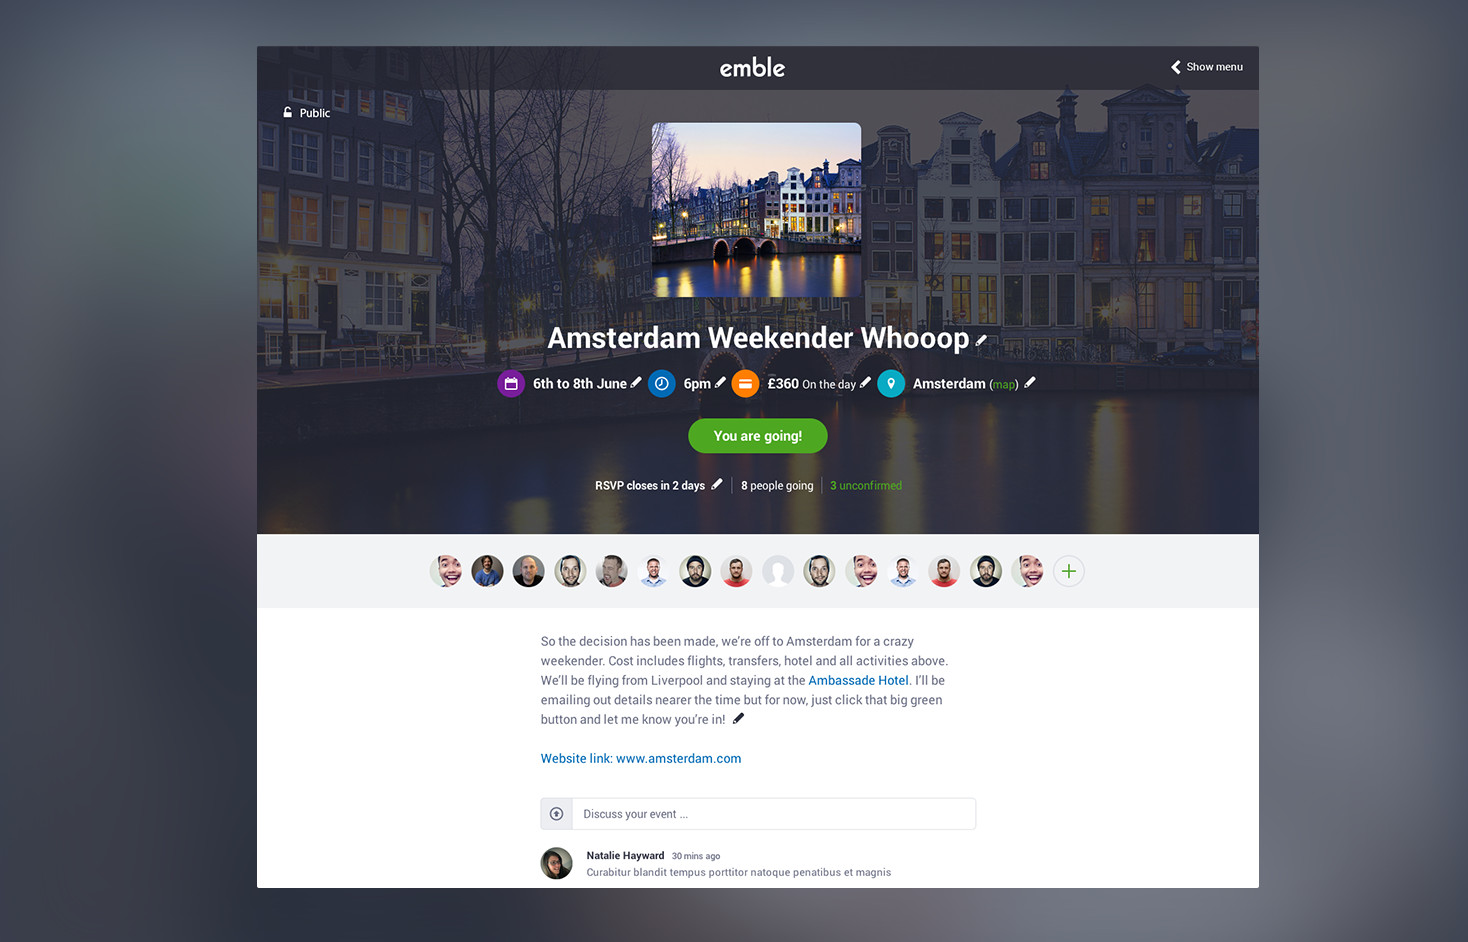 Emble-App-Slider-Image-Run-Event-Page-Clean-Minimal-Design